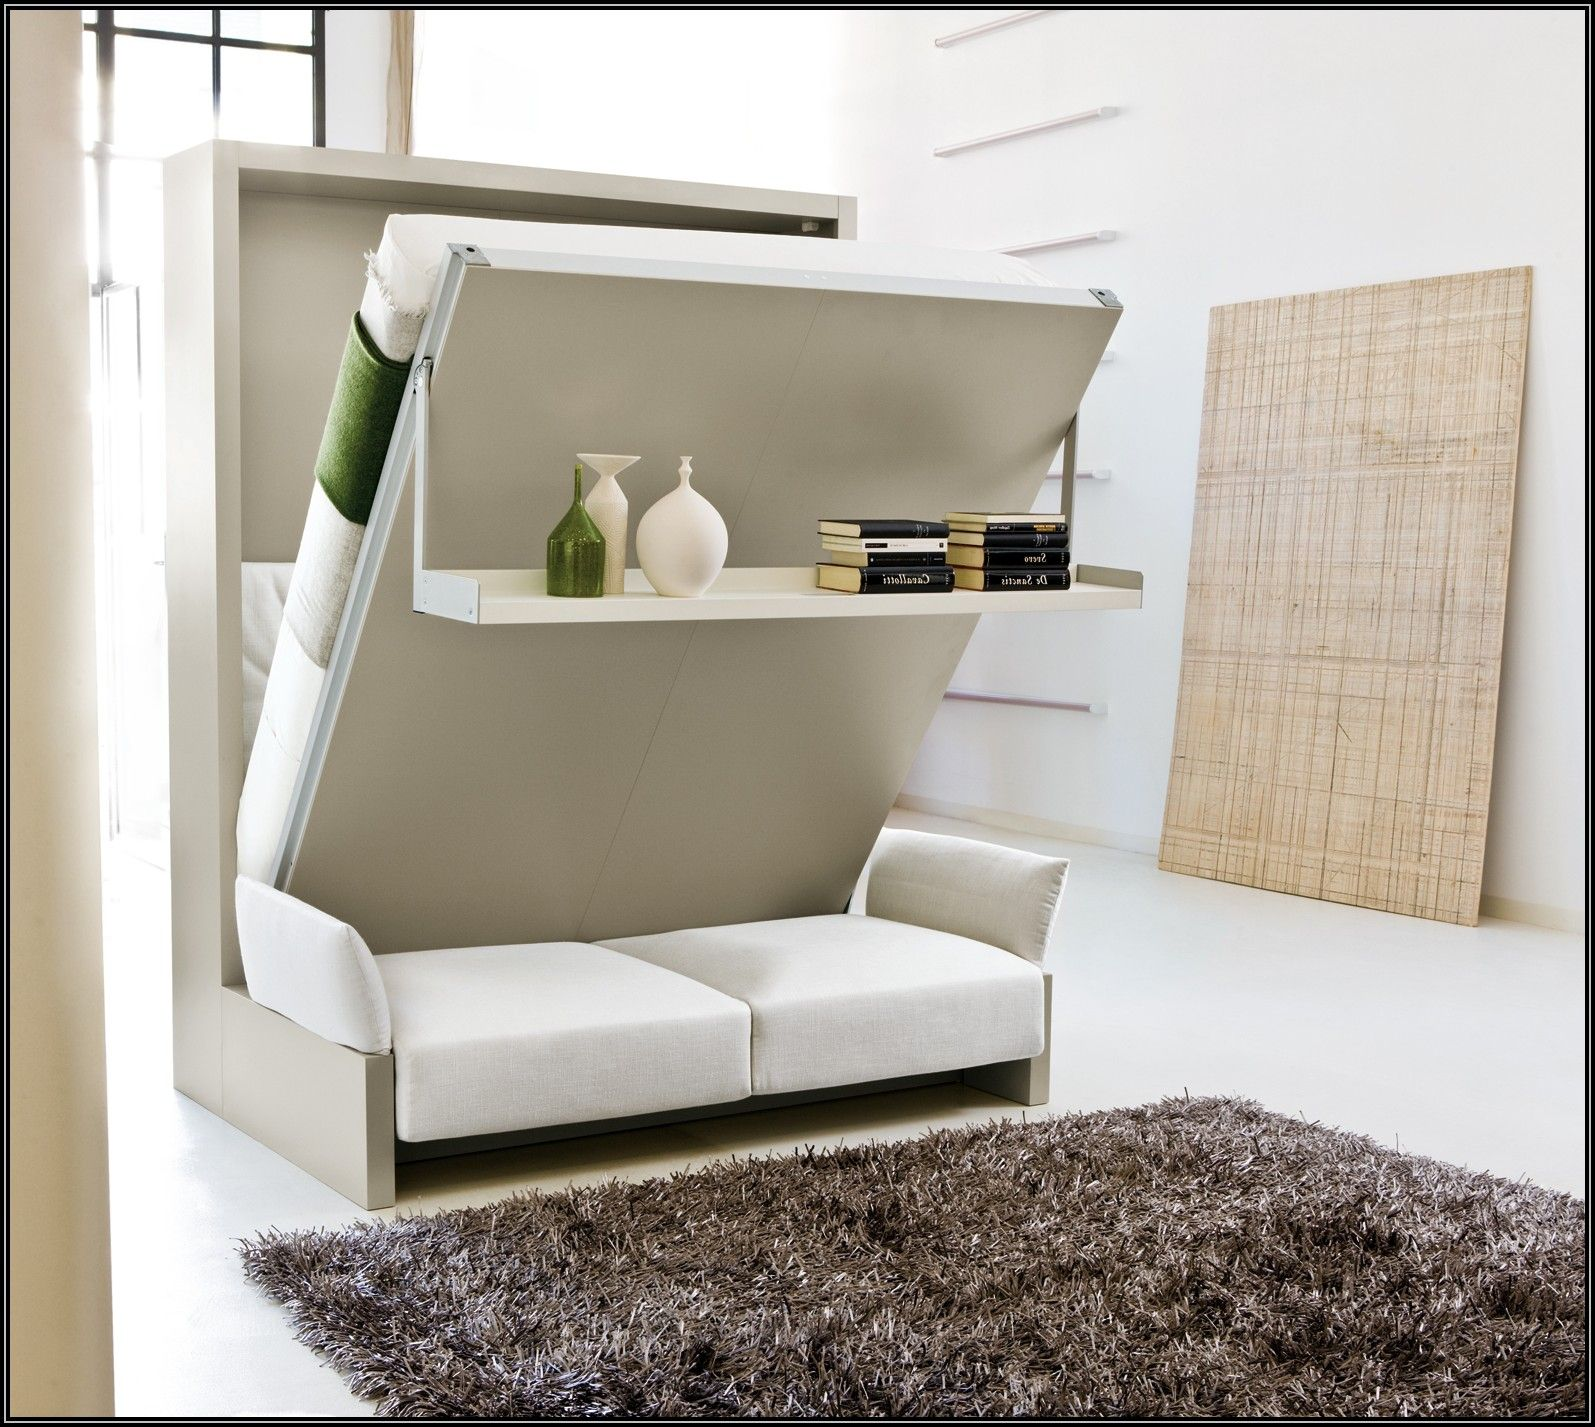 hide products space abfb chair and single bed alexis plus a half sofaalexis simmons seating sofa small